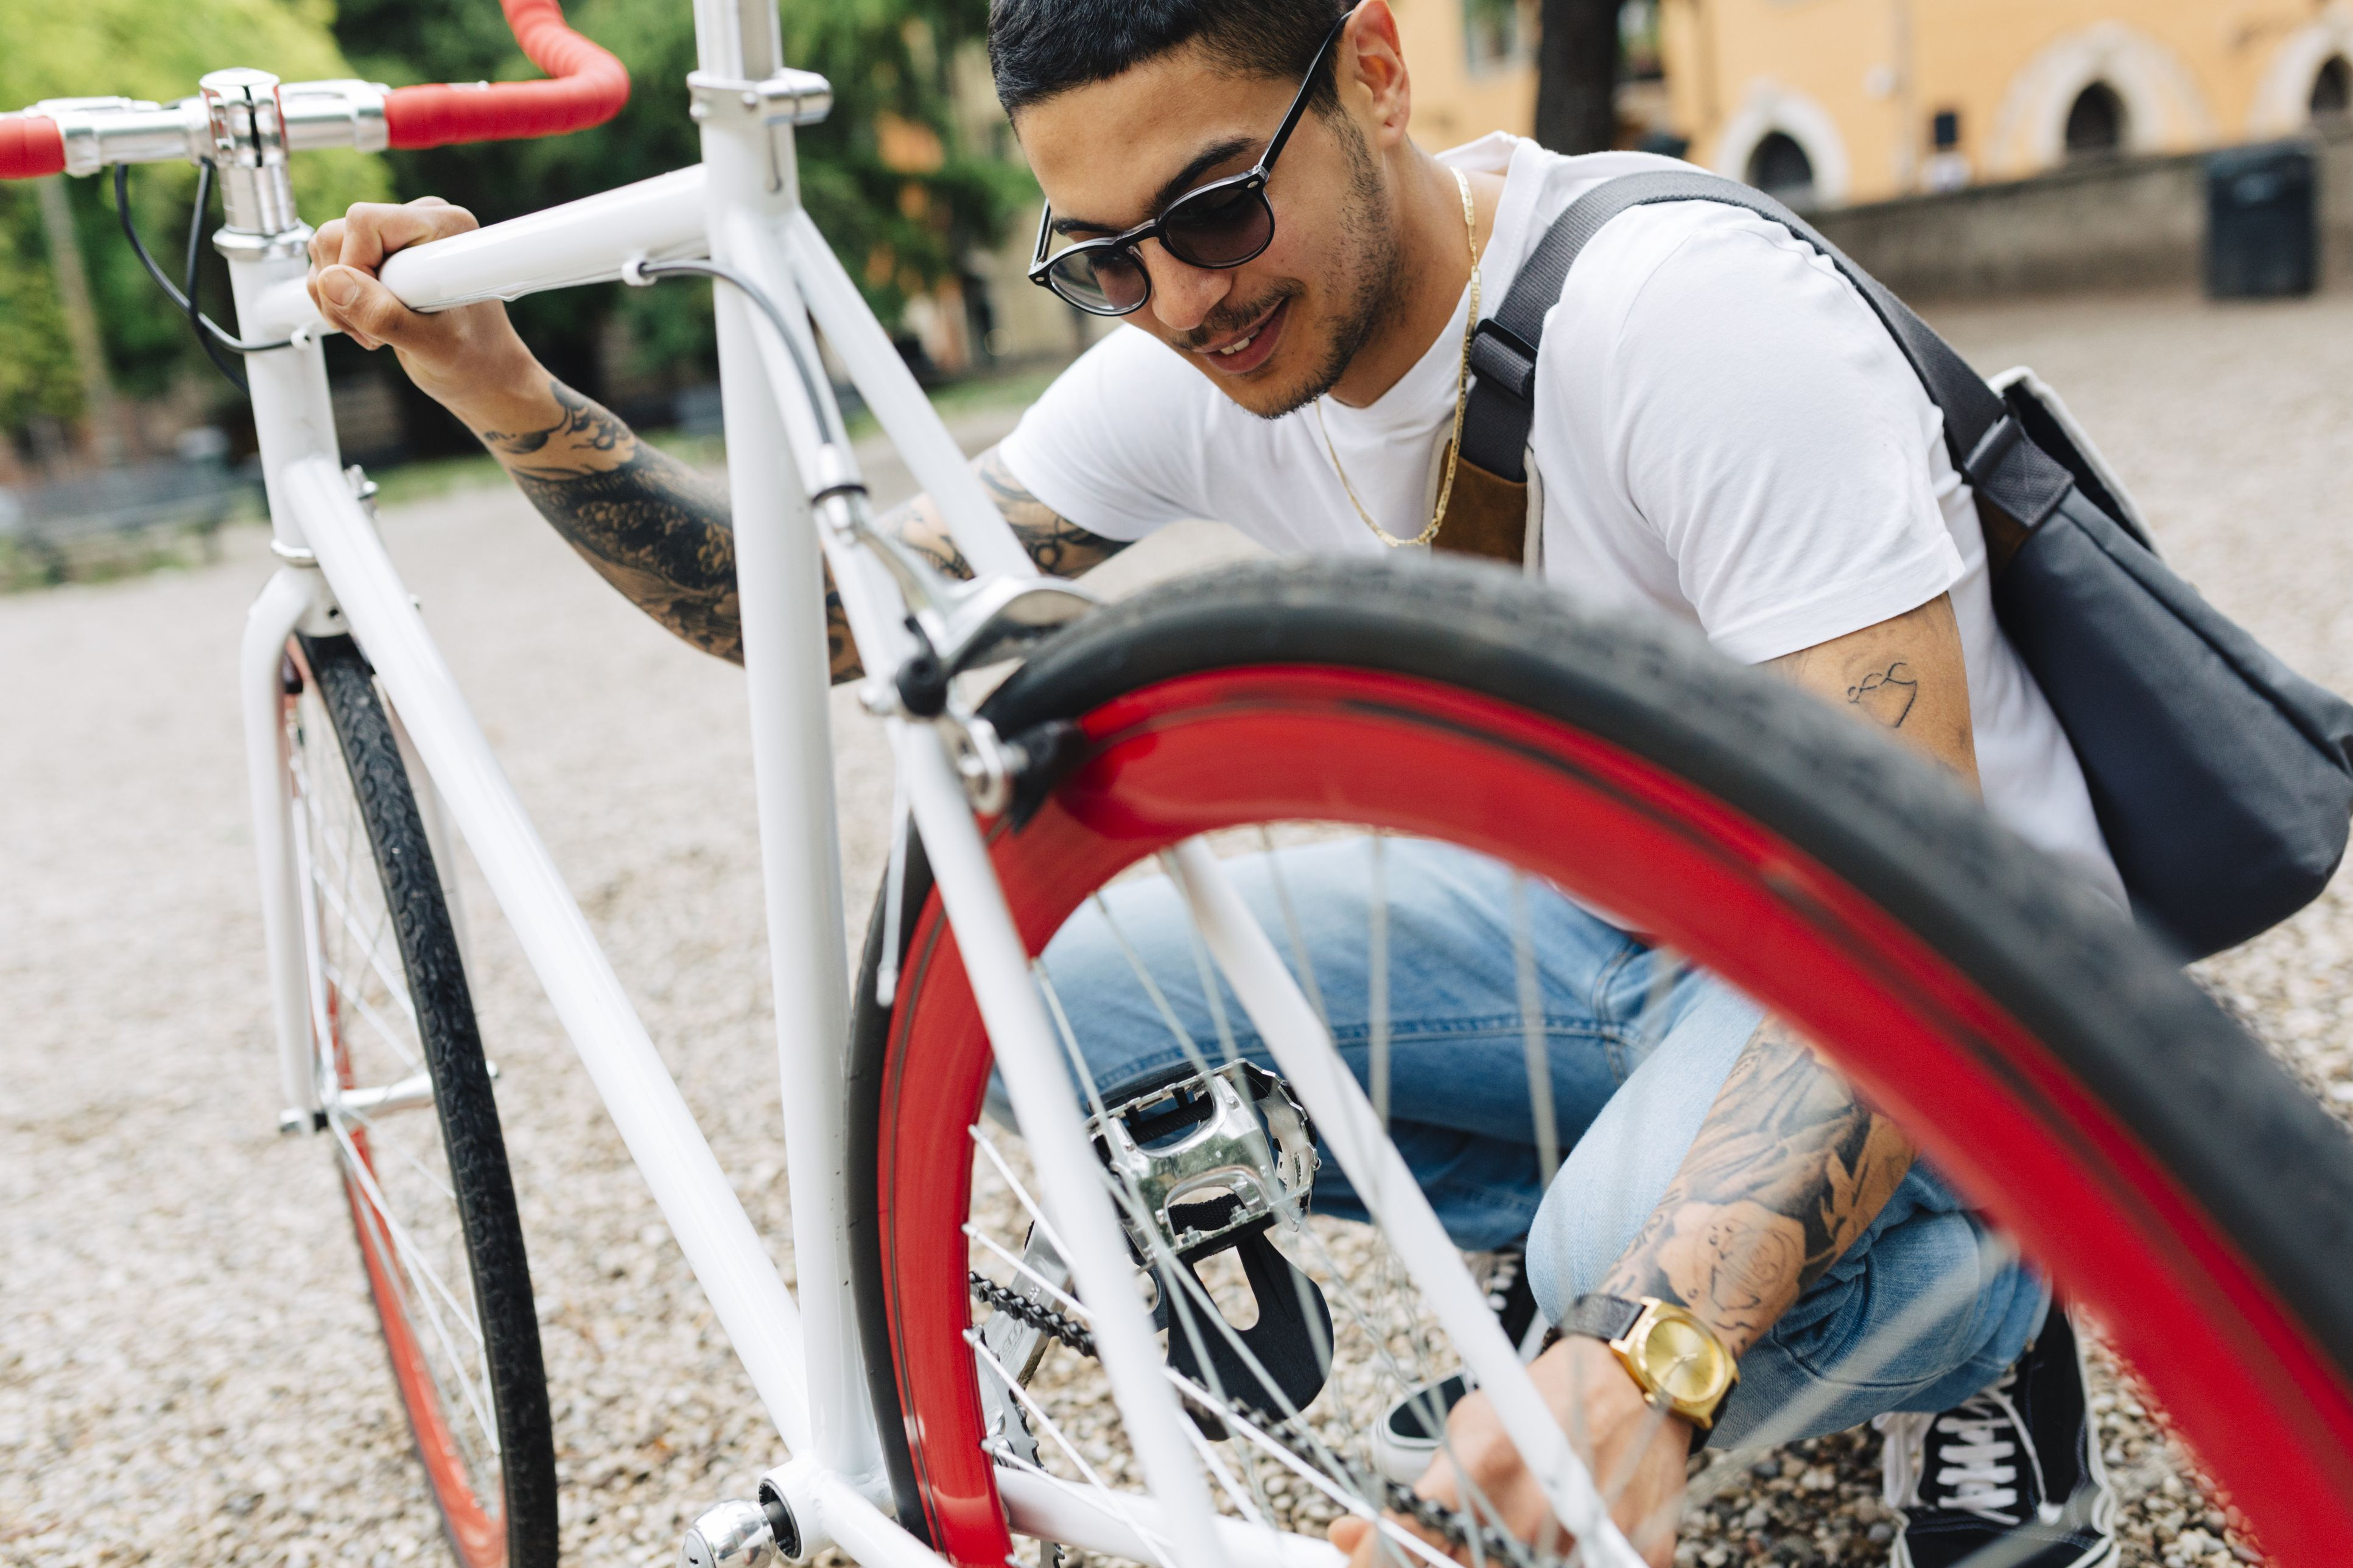 Buying a Used Bike - Tips on Buying a Second Hand Bike